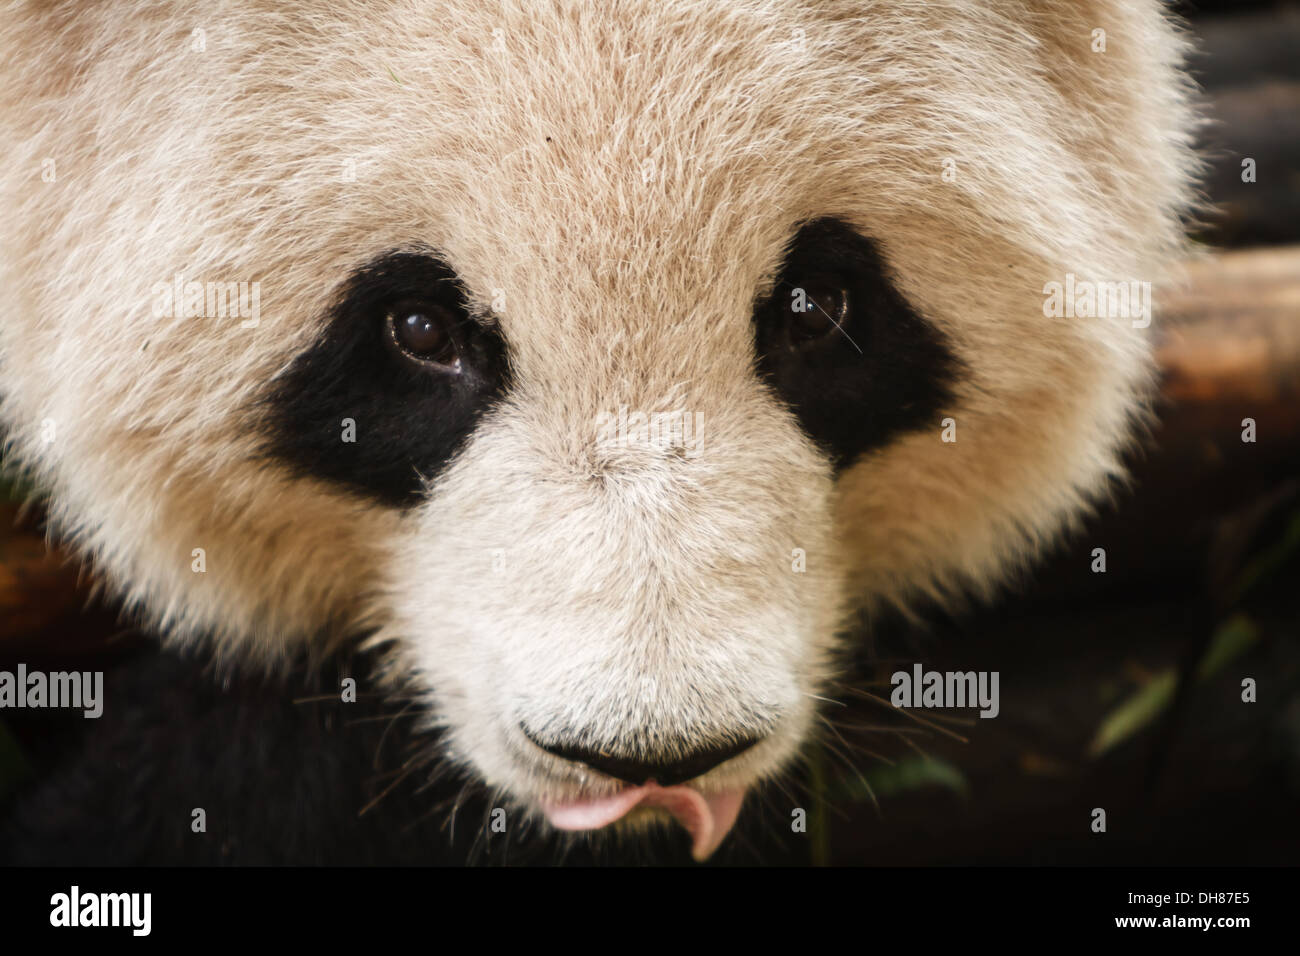 Close up of Panda bear's face with tongue hanging out Chengdu Giant Panda Breeding Center in Sichuan China - Stock Image